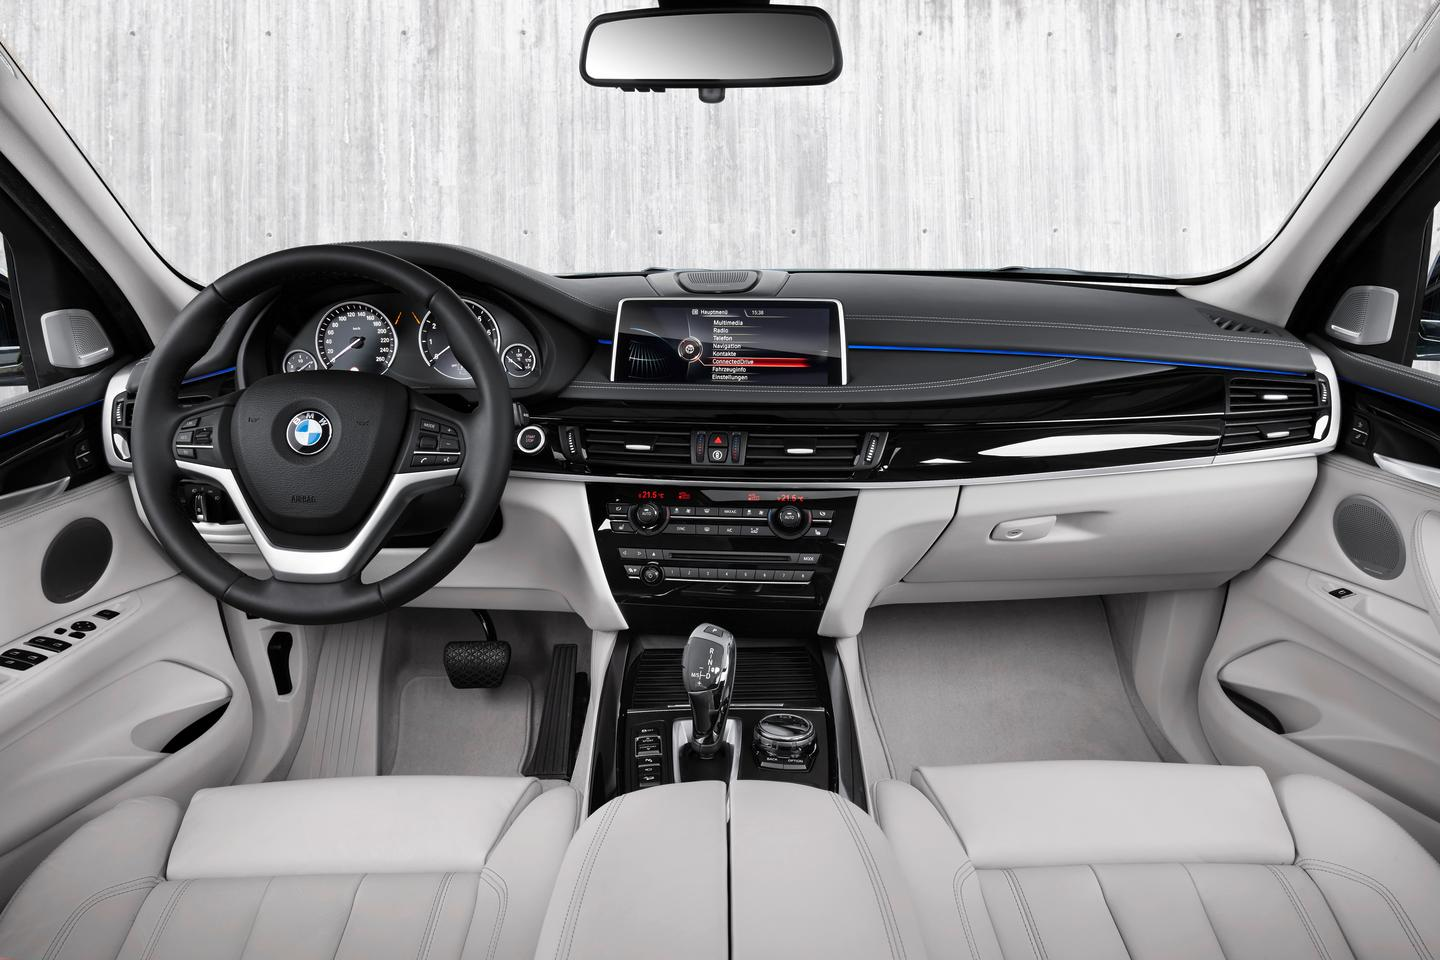 The dash of the new BMW X5 xDrive40e, modern and efficient